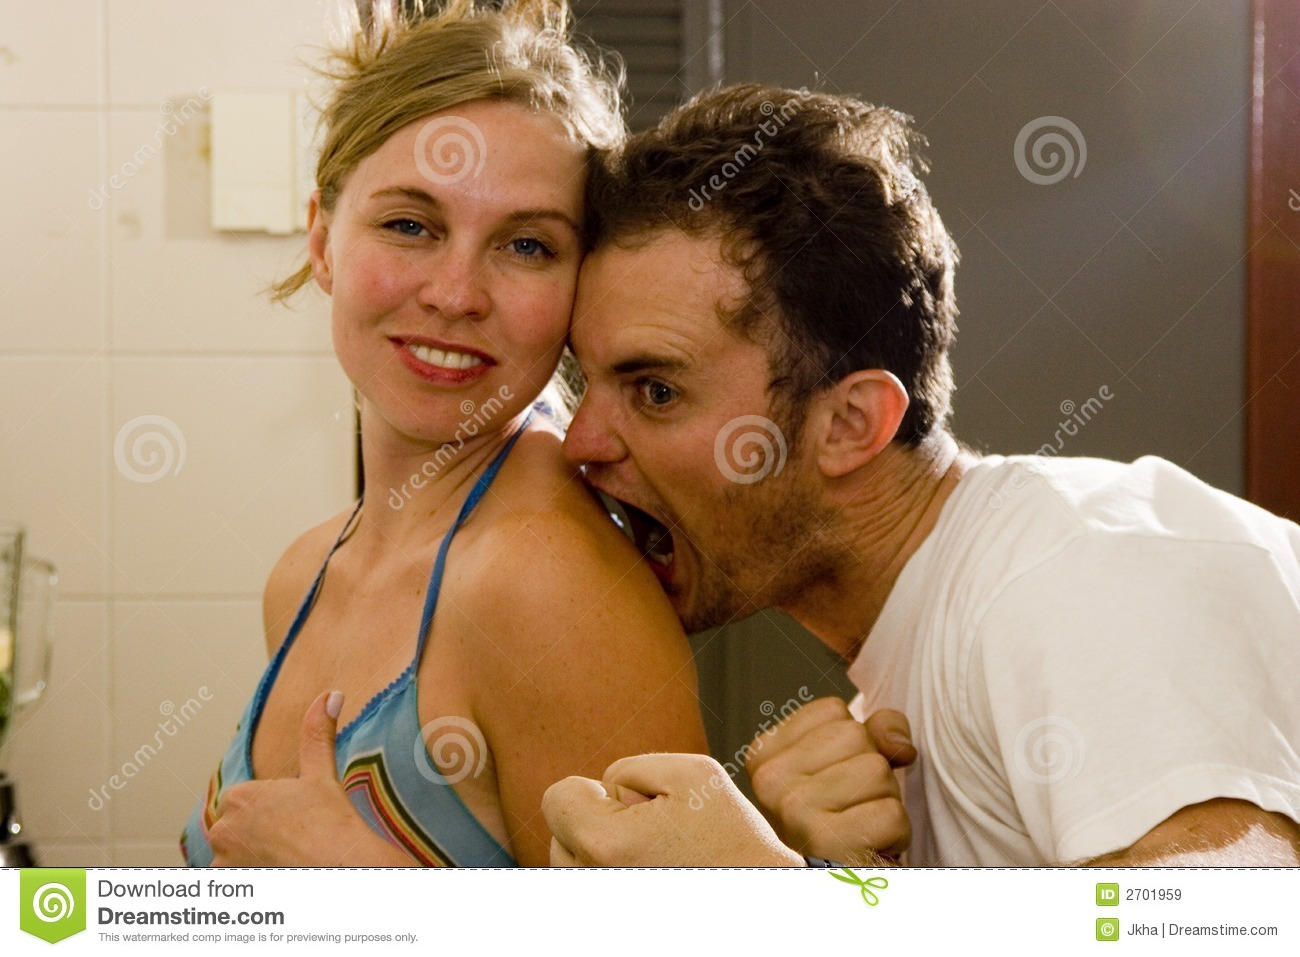 Download Expression of love stock image. Image of brunette, couple - 2701959